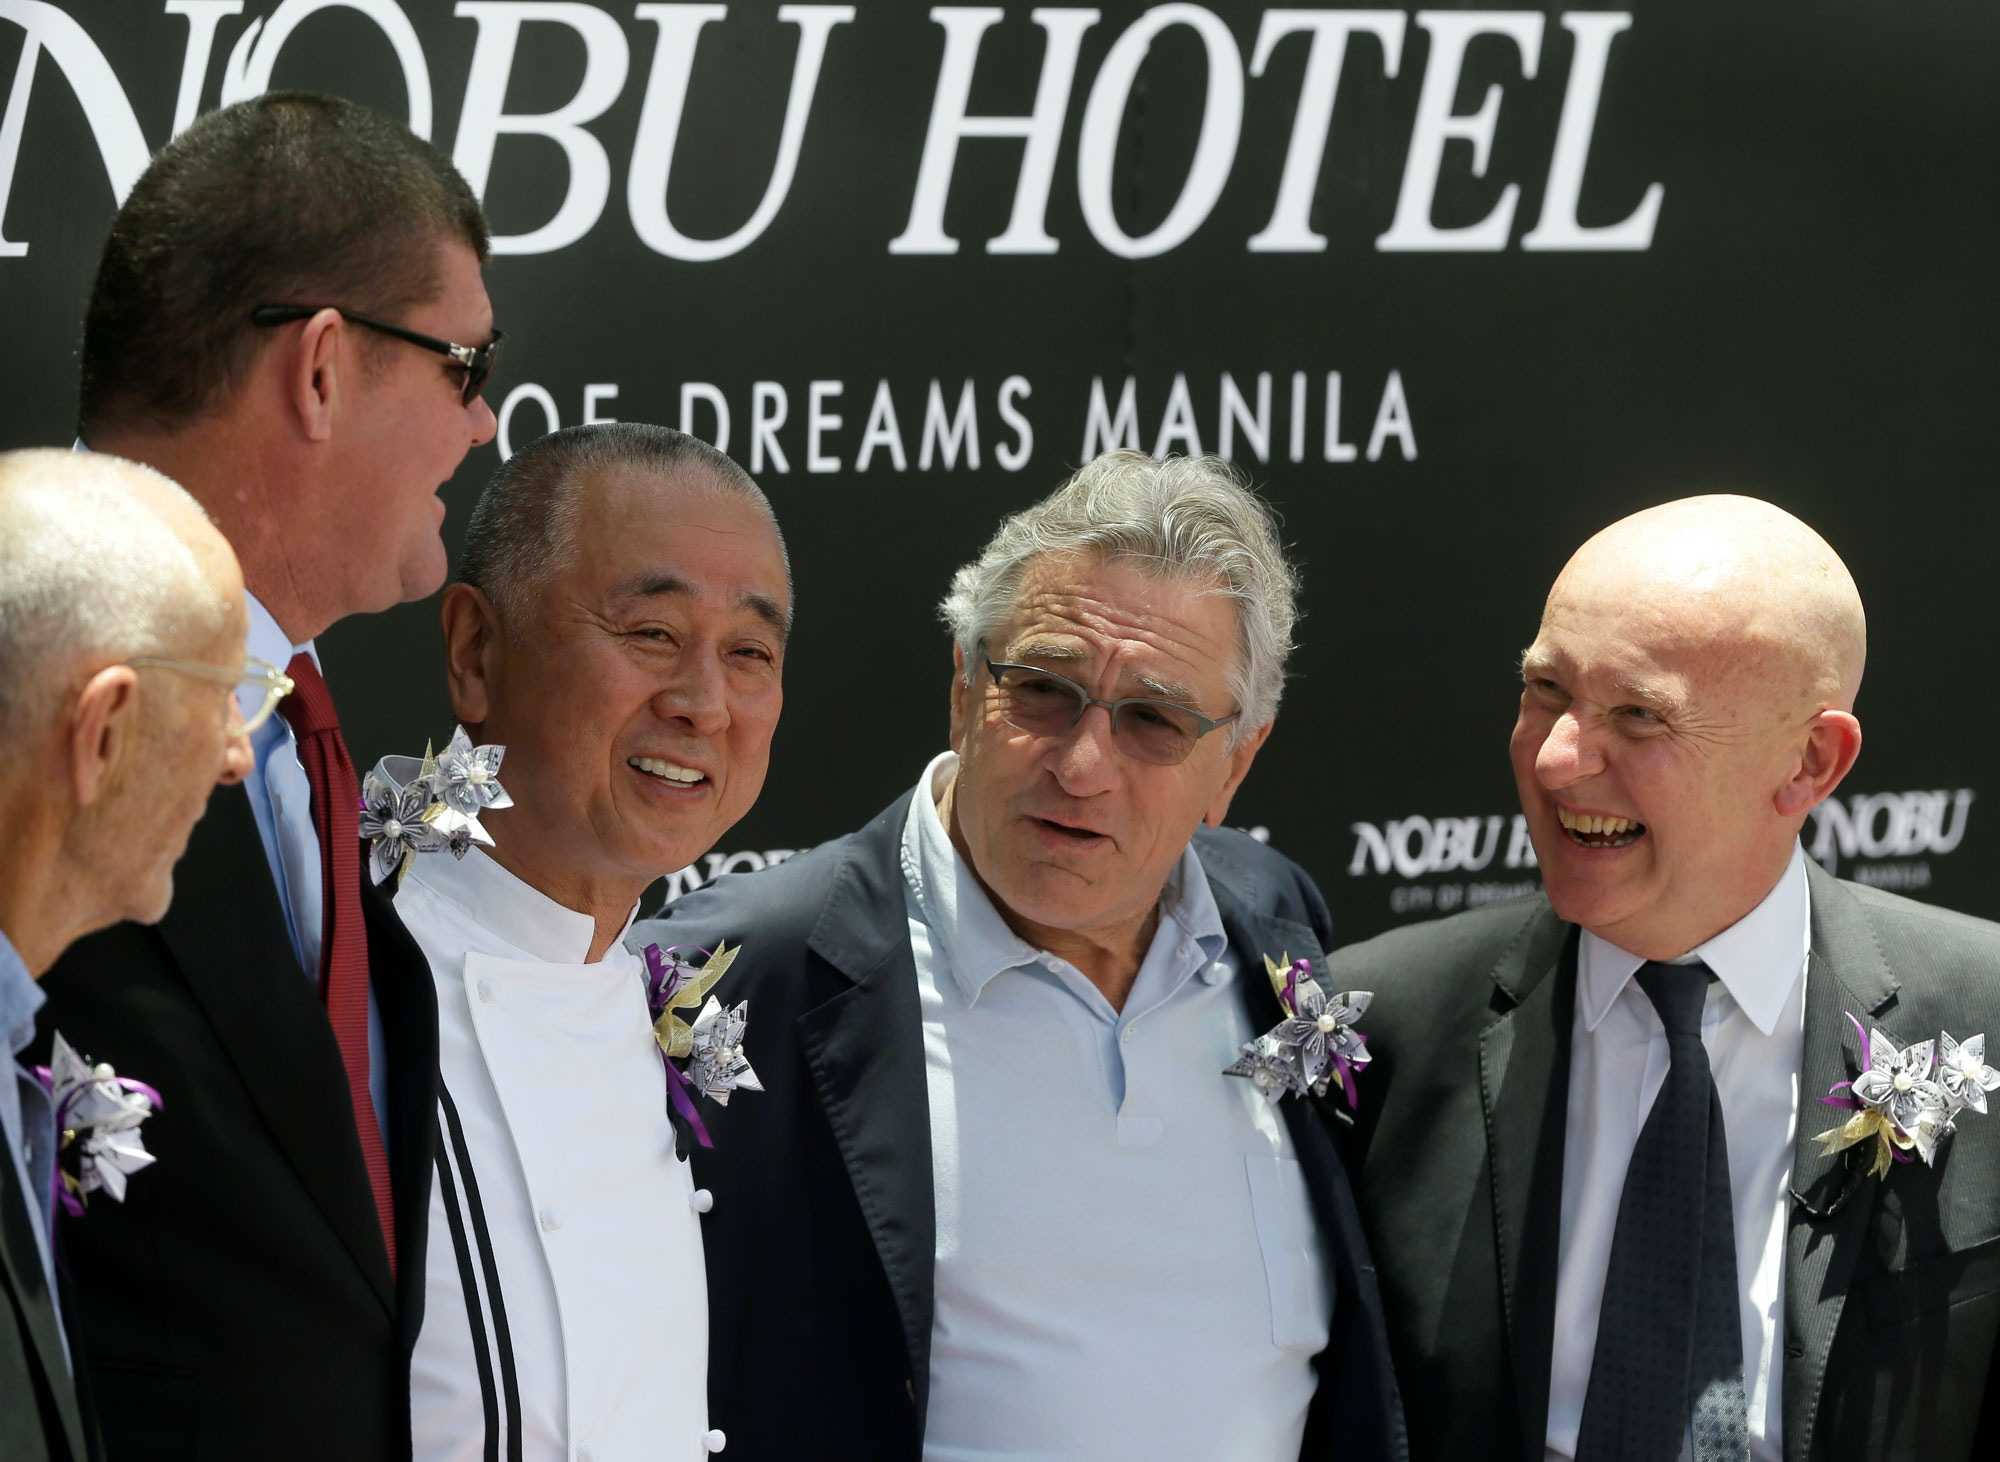 Trevor Horwell, CEO of Nobu Hospitality, from right,  Hollywood actor Robert De Niro, Japanese culinary Chef Nobu Matsuhisa, Melco Crown Entertainment Co-Chair James Packer and Hollywood film producer Meir Teper pose during the  ribbon-cutting ceremony at the opening of the Nobu Hotel at the City of Dreams Casino Monday, May 18, 2015 at suburban Pasay city, south of Manila, Philippines. The 321-room Nobu Hotel, founded by partners Chef Nobu, Robert De Niro and Teper, is said to be the first Nobu hotel to open in Asia. (AP Photo/Bullit Marquez)